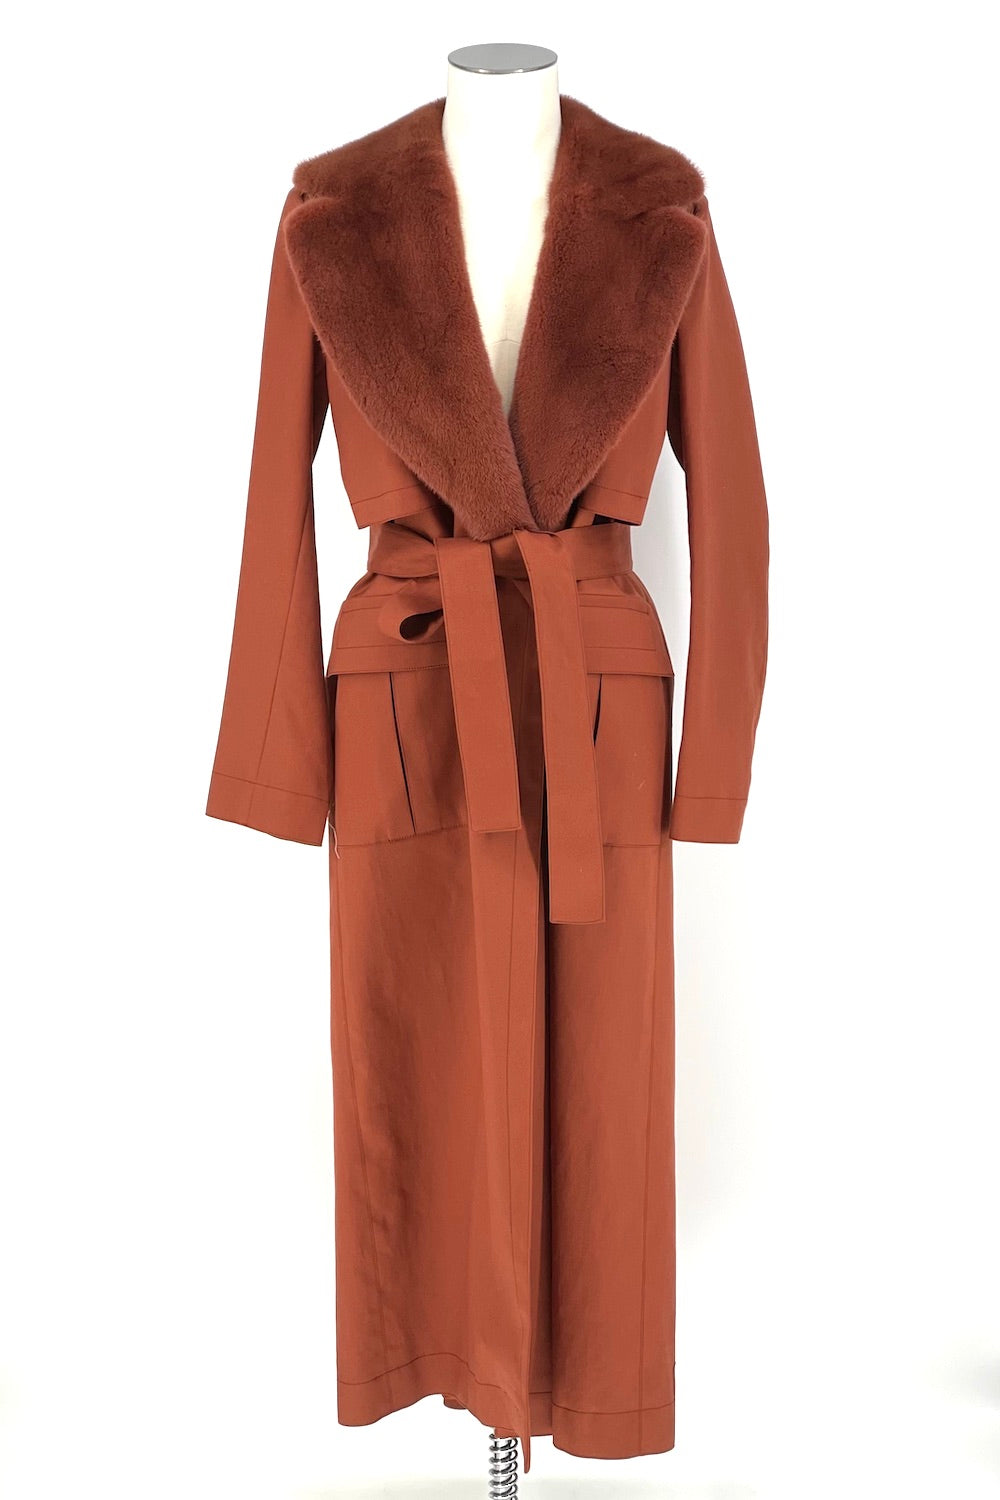 Sienna Mink Trench Coat with Fur Collar